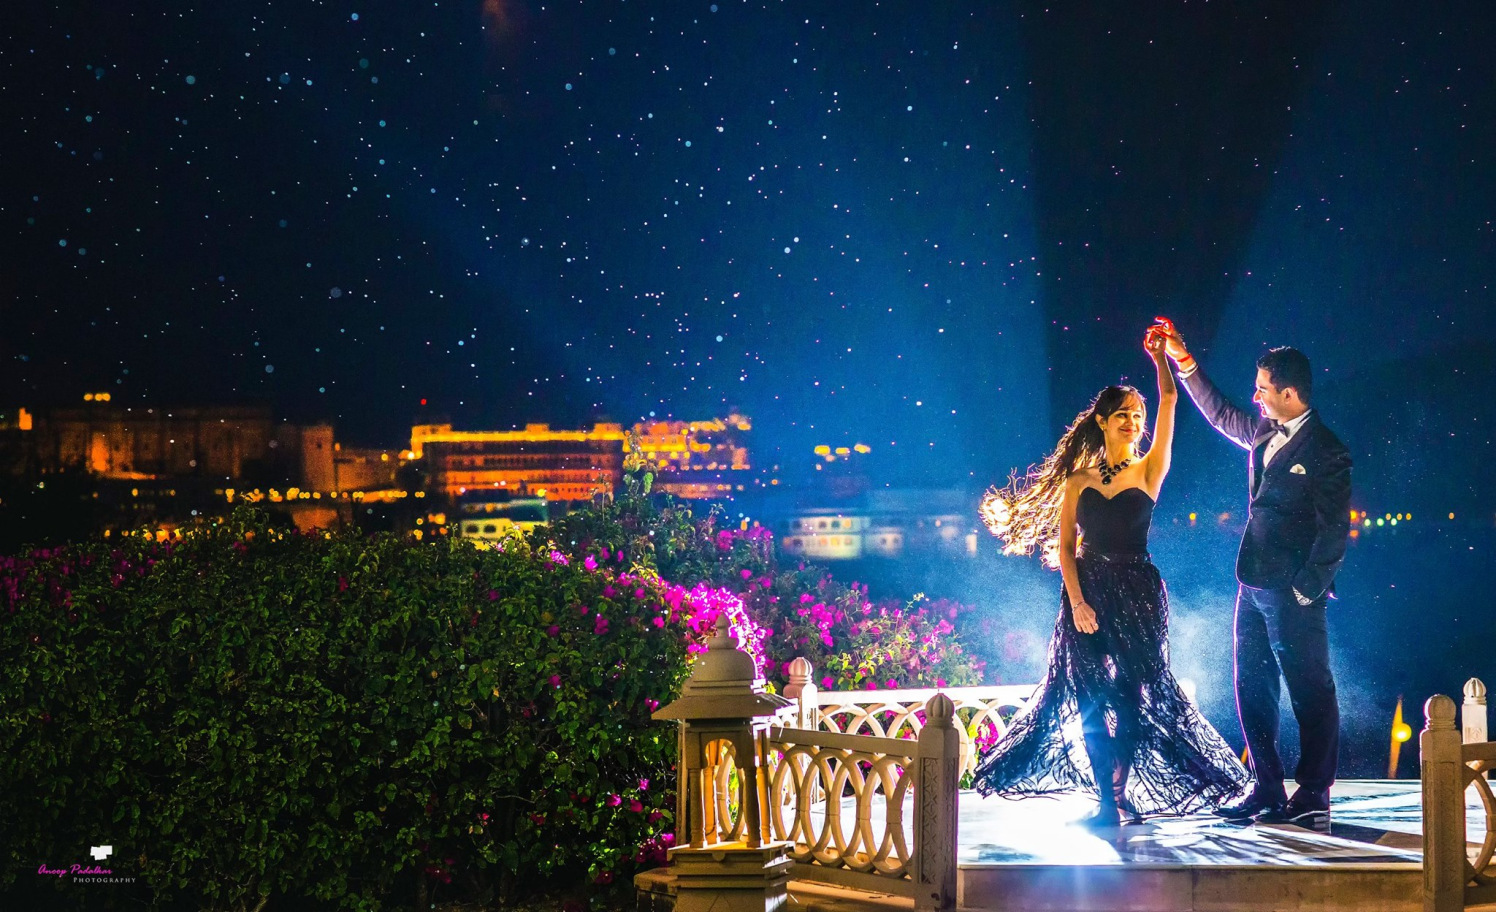 Starry night by Wedding Krafter Wedding-photography | Weddings Photos & Ideas